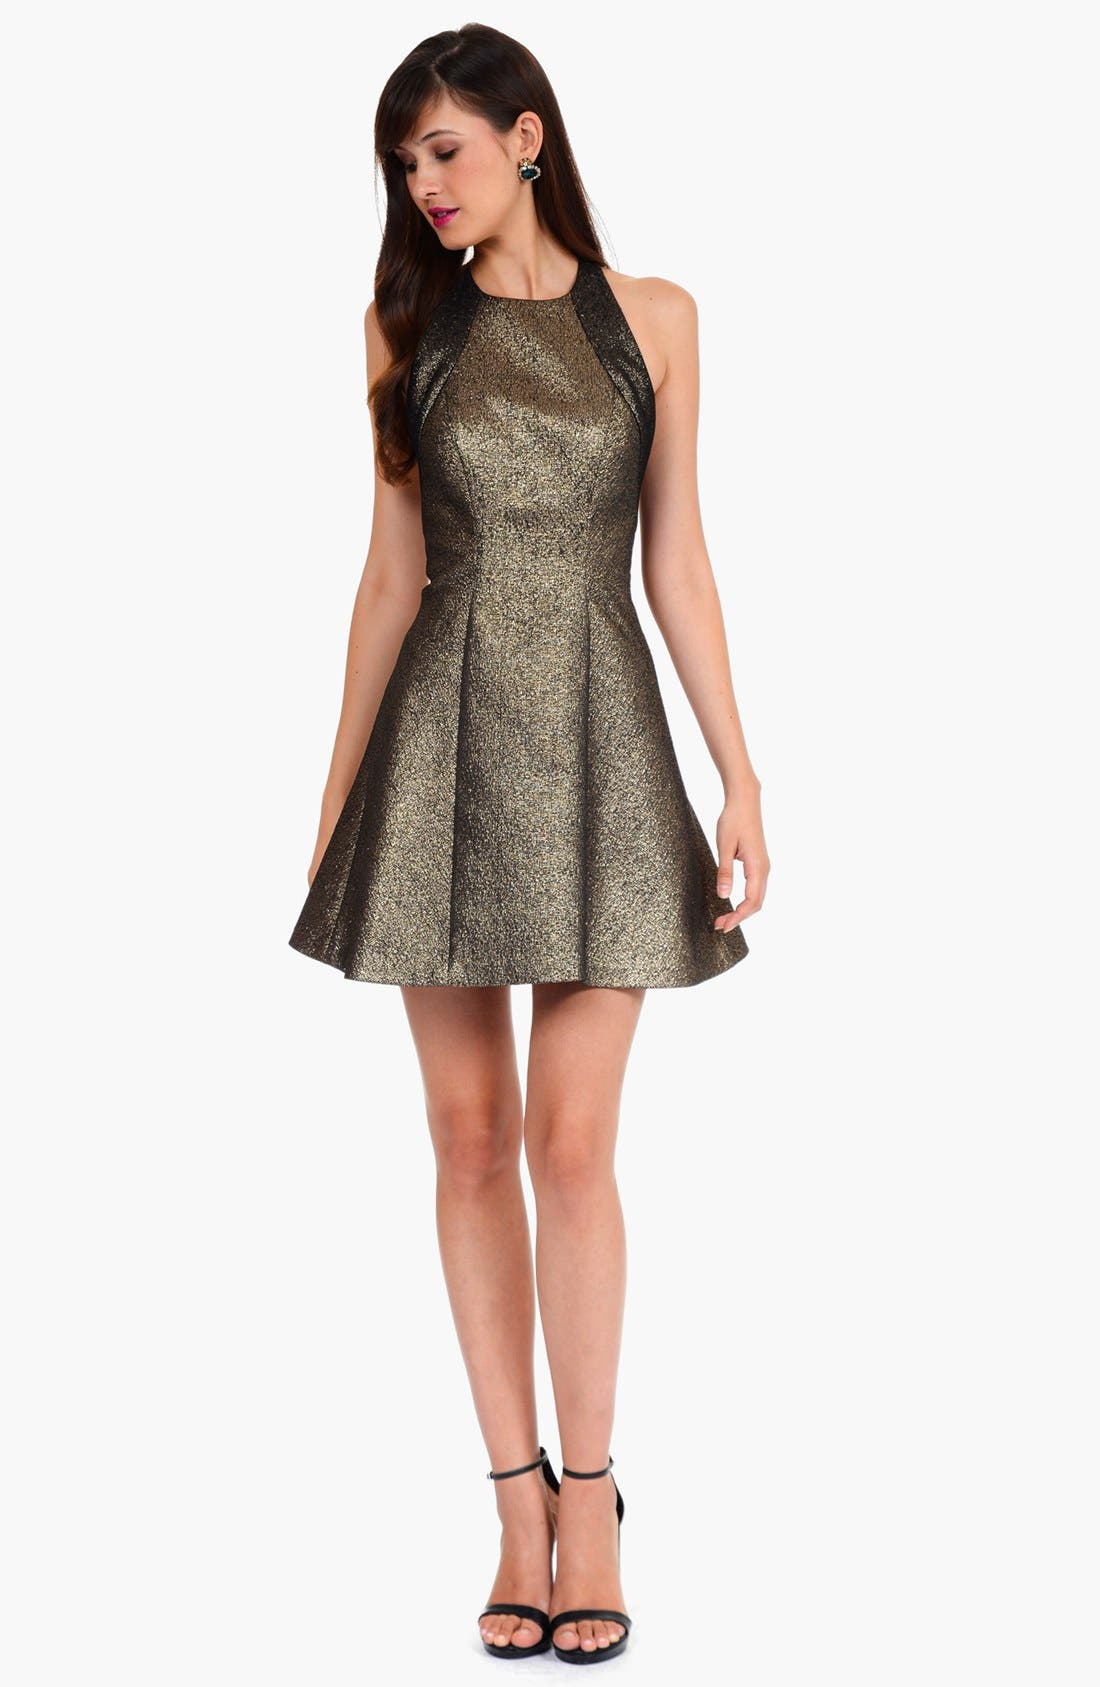 Alternate Image 1 Selected - Phoebe by Kay Unger Metallic Racerback Fit & Flare Dress